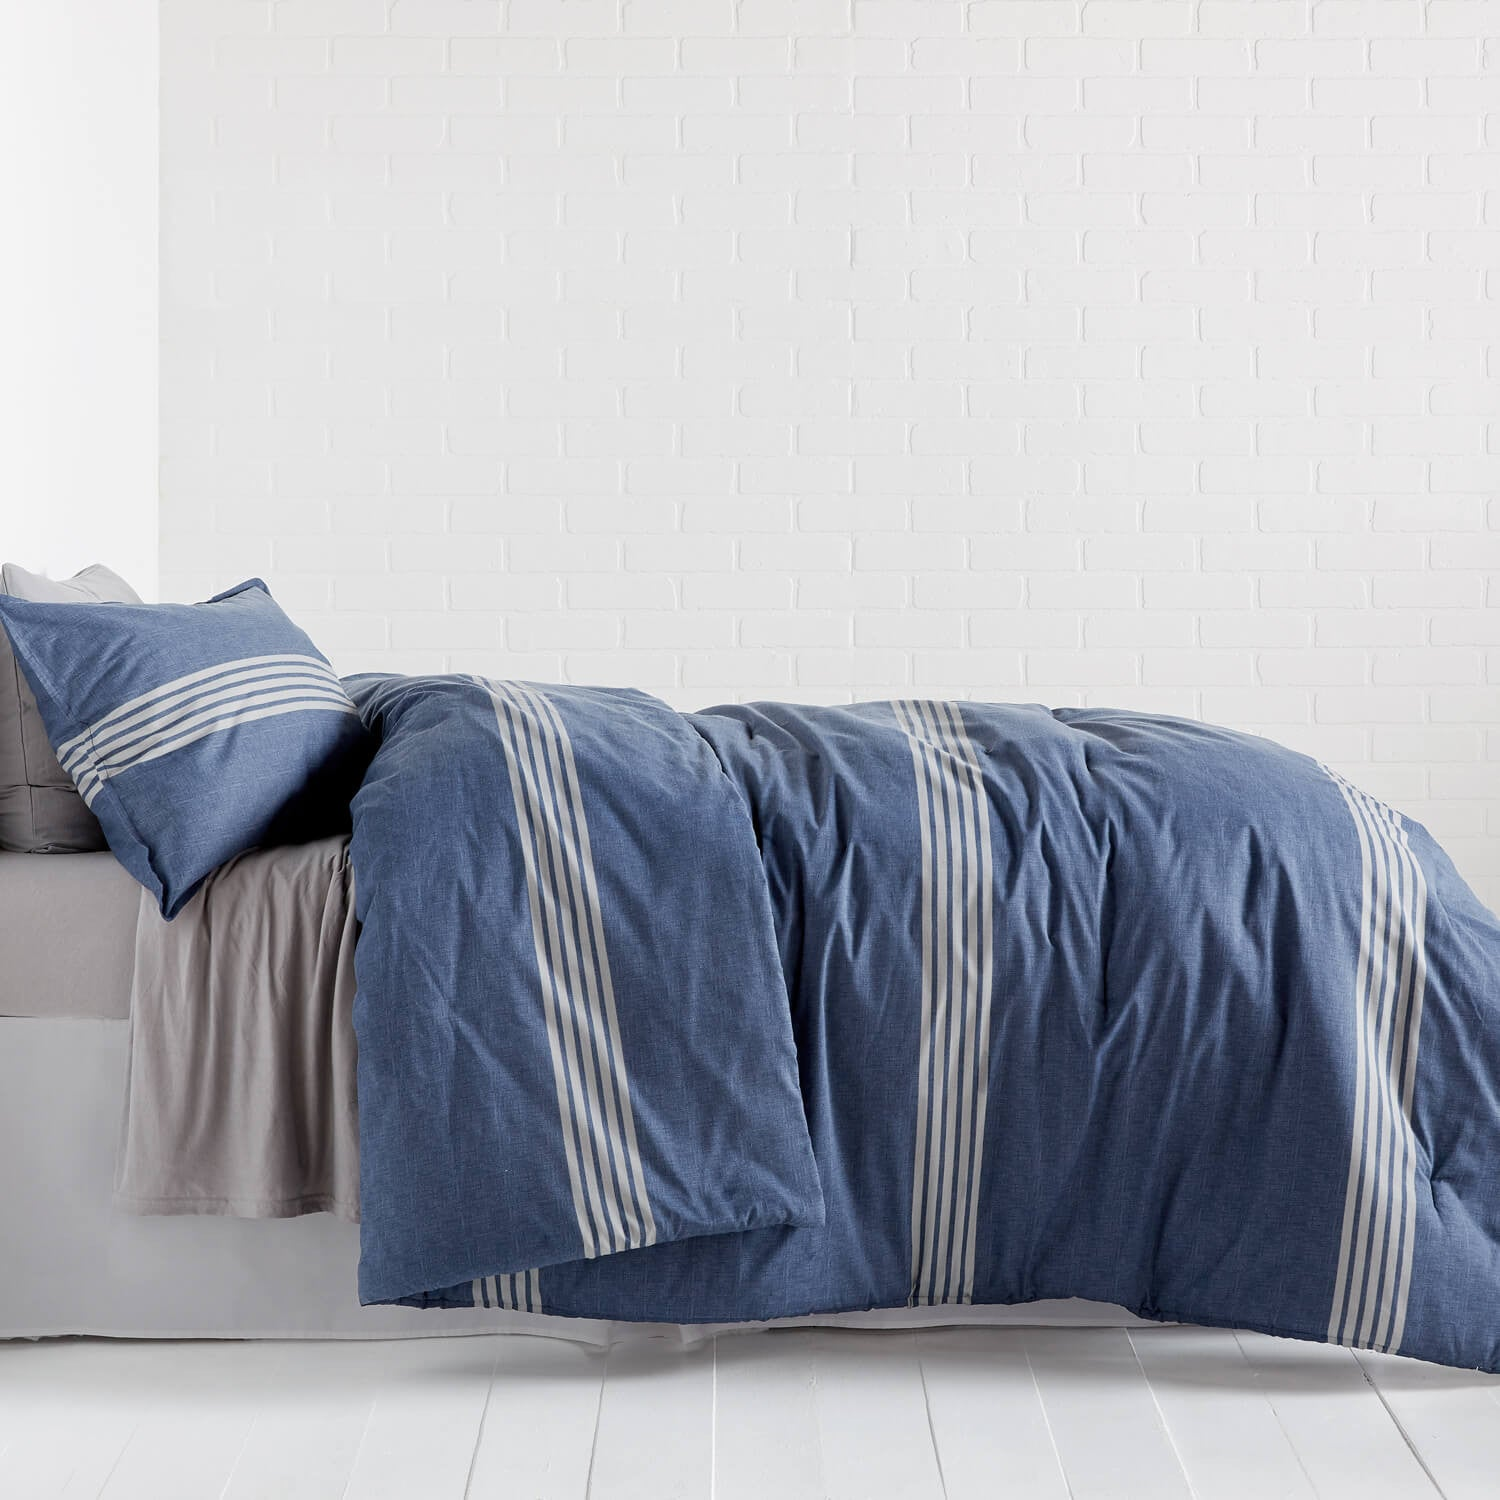 Stanton Stripe Comforter and Sham Set - Twin